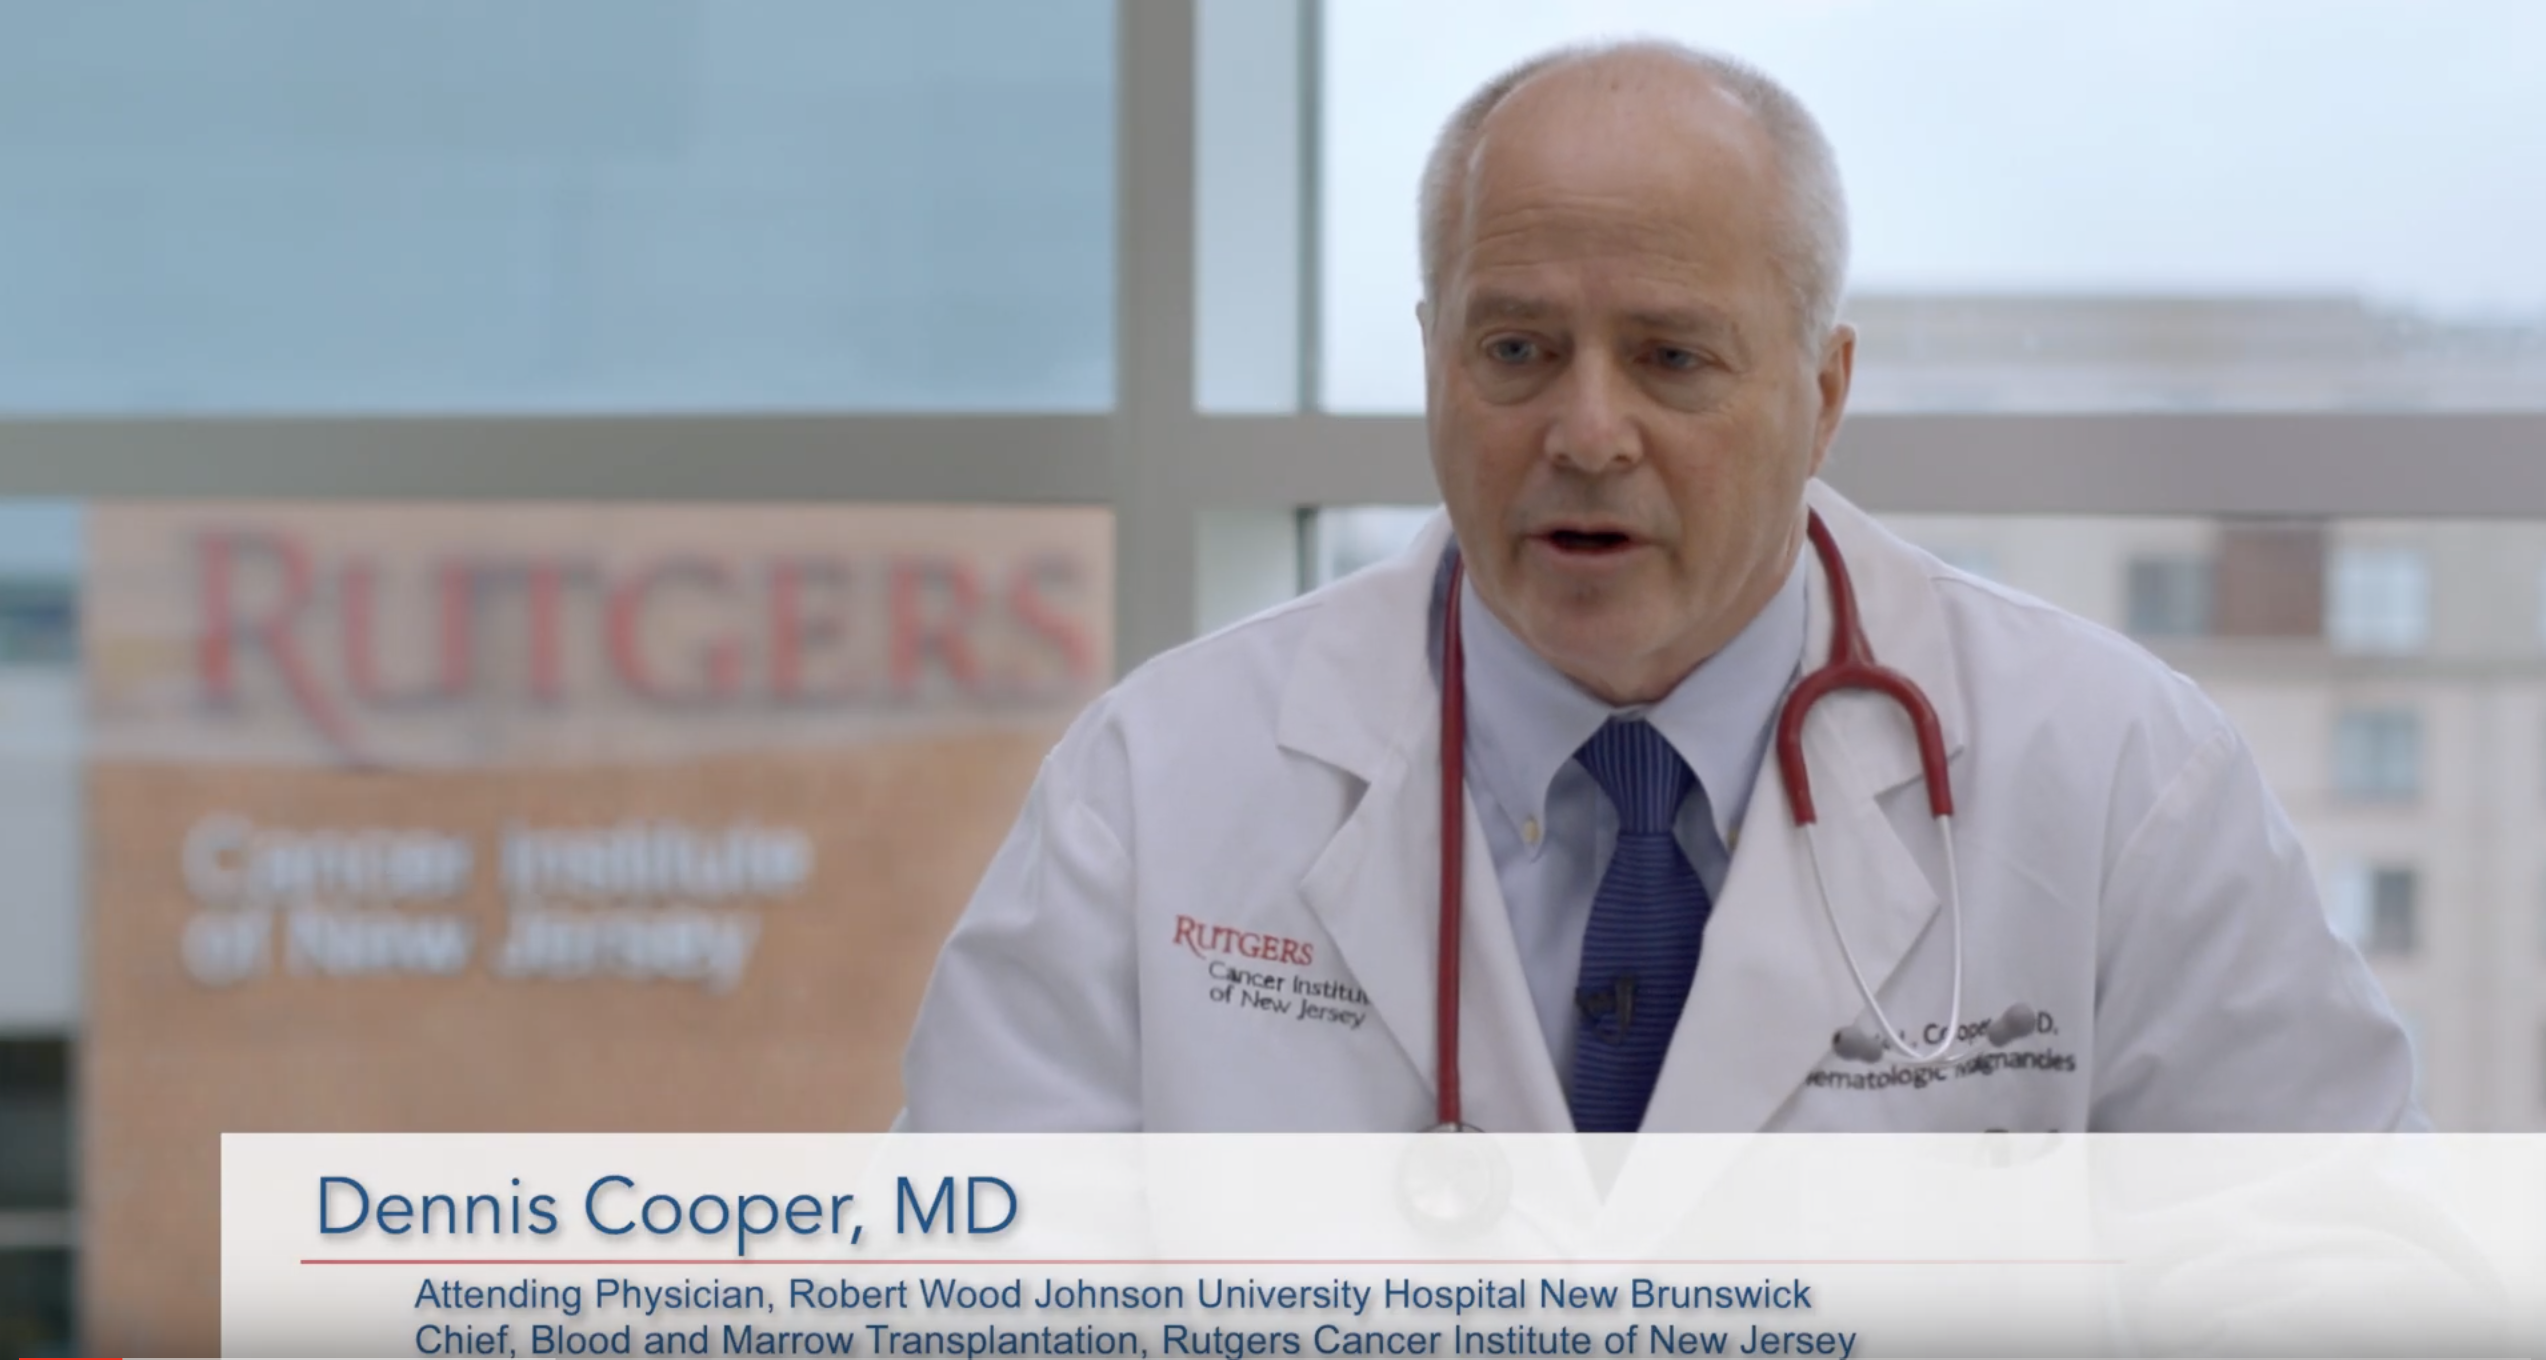 Blog: The Cure for Blood Cancer is in Your Hands | Rutgers Cancer